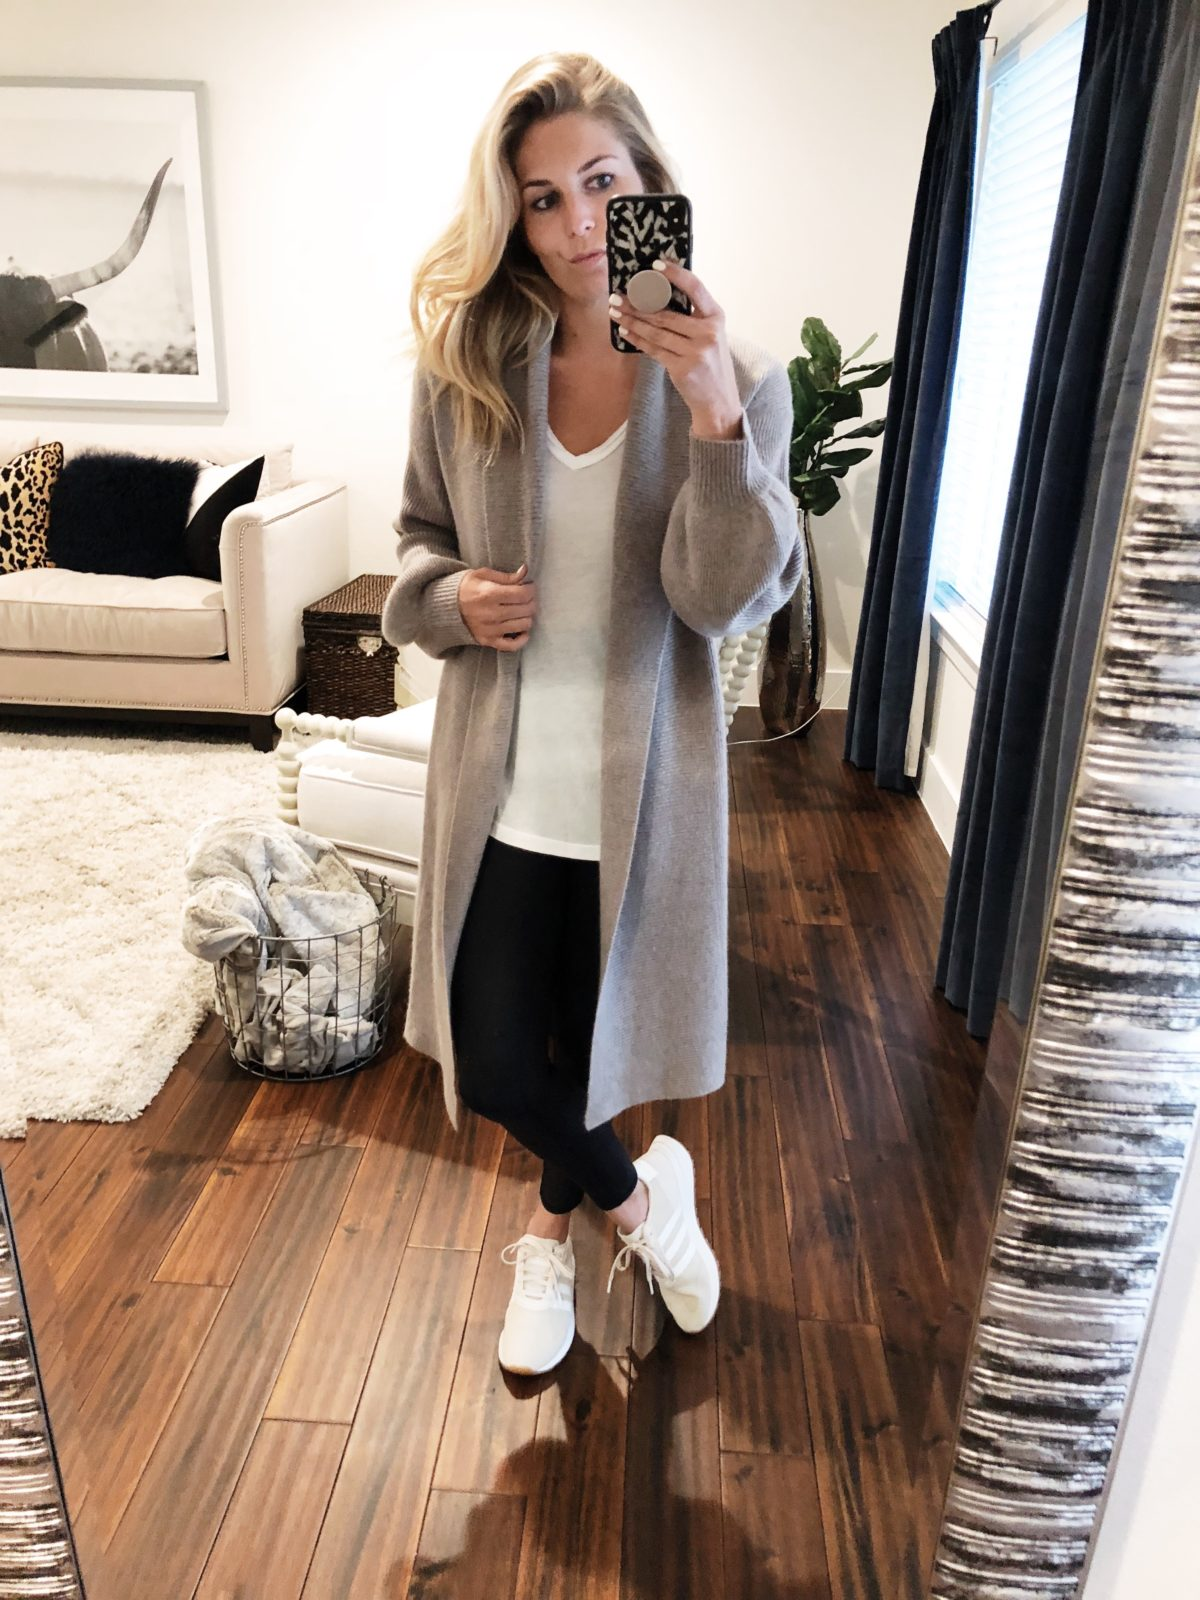 Adidas shoes // Size 7 1/2  Halogen Long Cashmere Cardigan // Size S (sooo soft)  BP Classic White T-Shirt // Size S (always stock up on these every year)  ALO Leggings // Size S